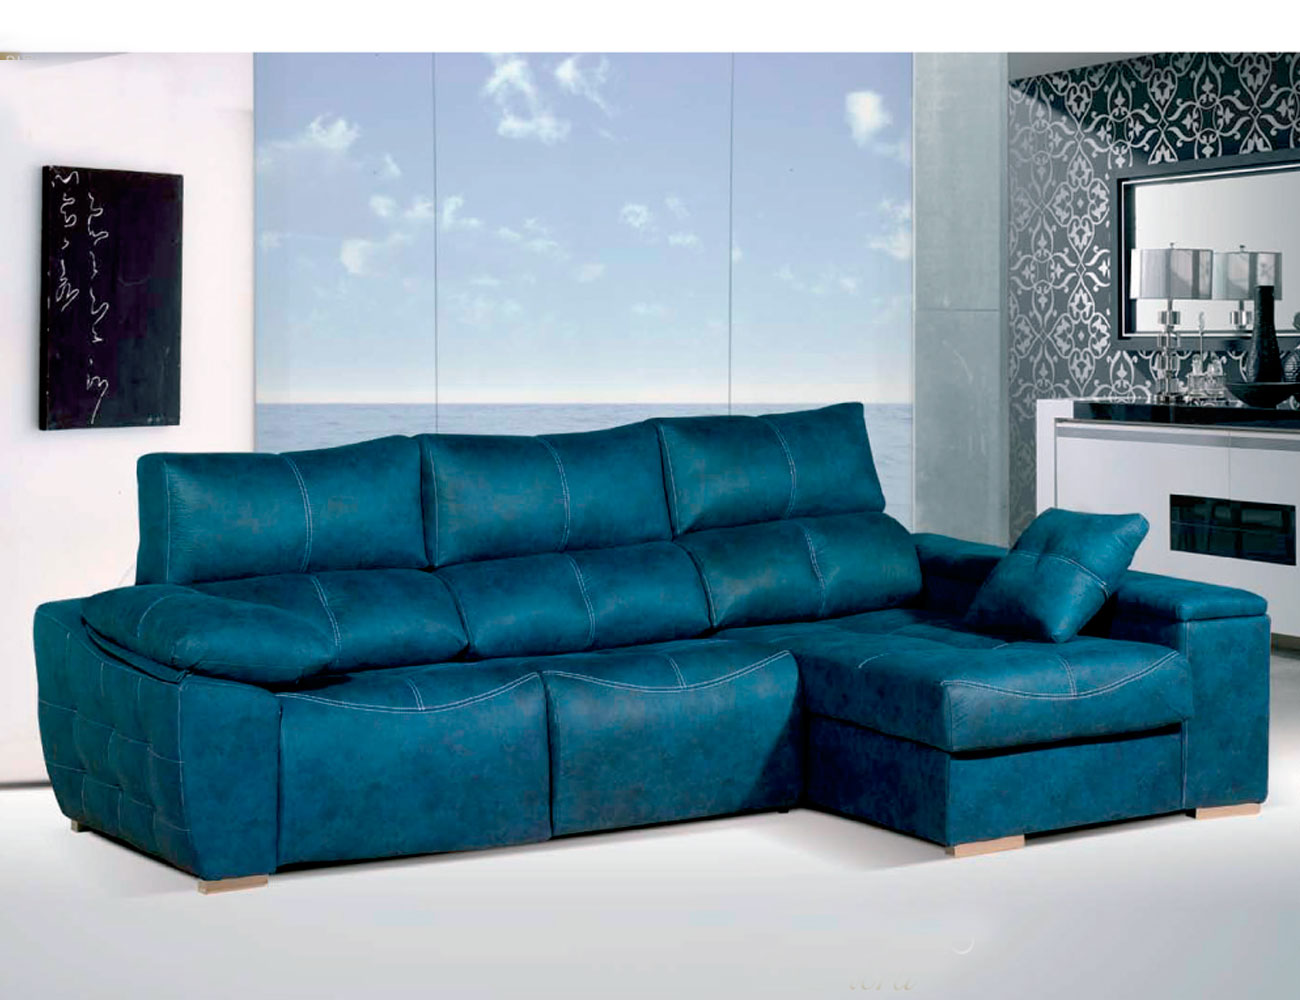 Sofa chaiselongue relax 2 motores anti manchas turquesa3